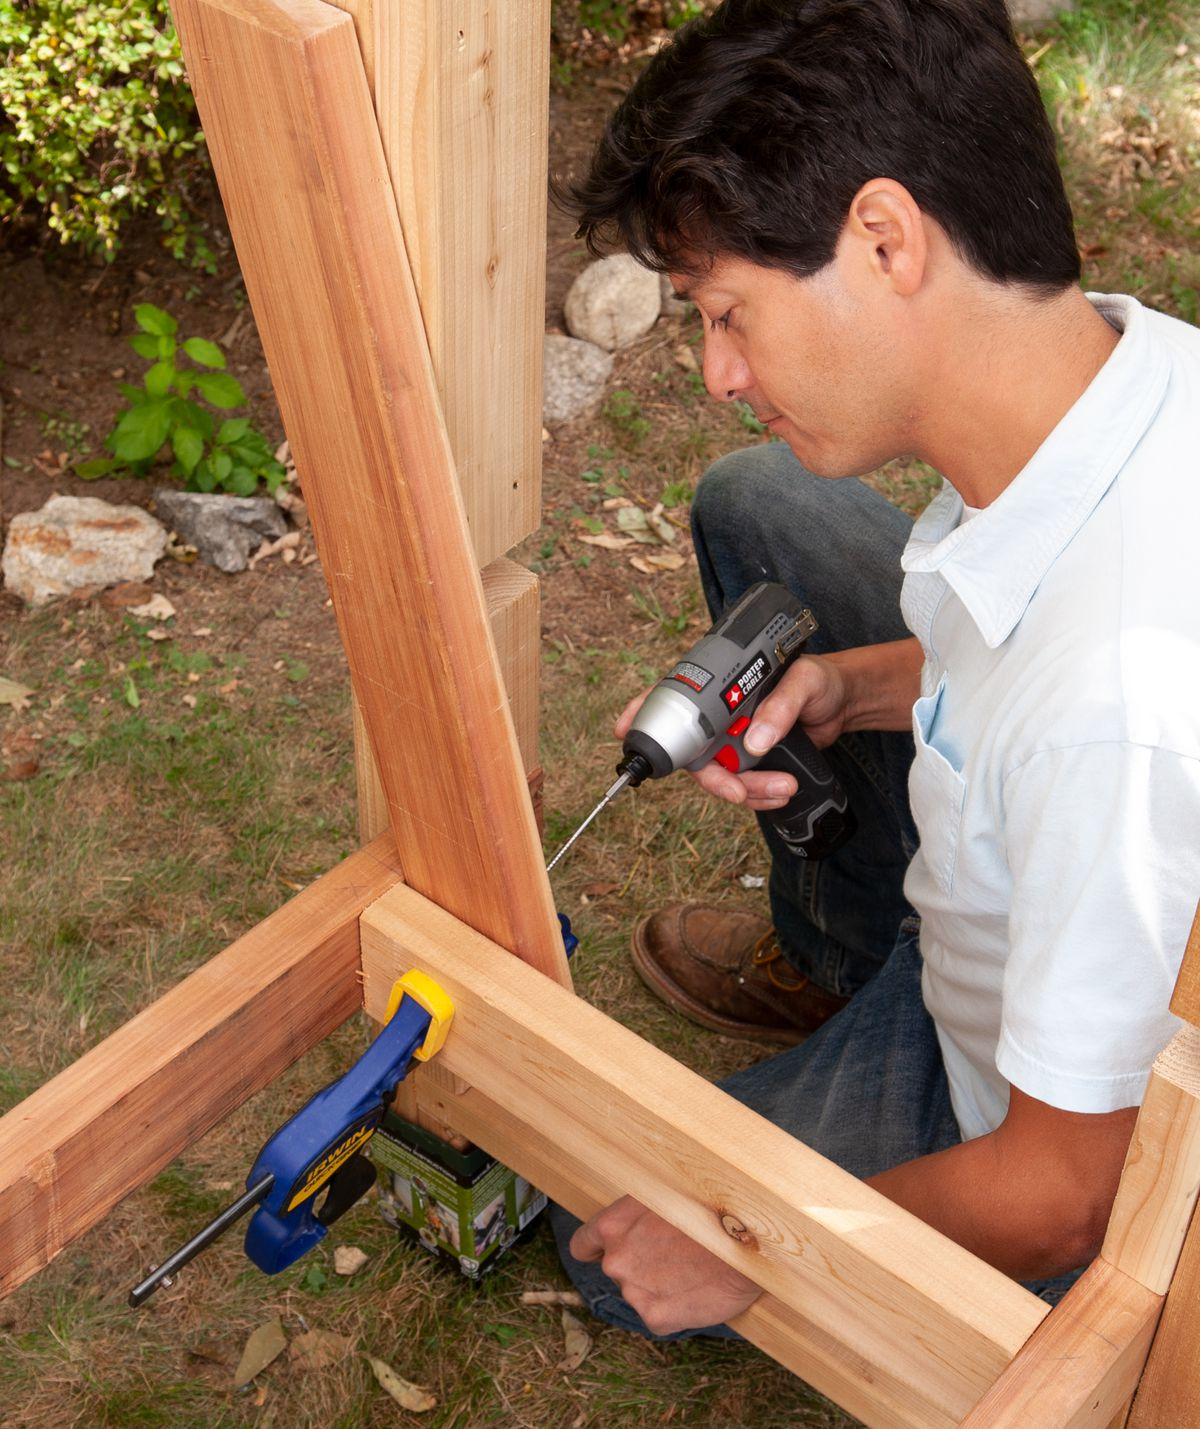 Man Cuts Pieces And Installs Side Supports Of Arbor Bench